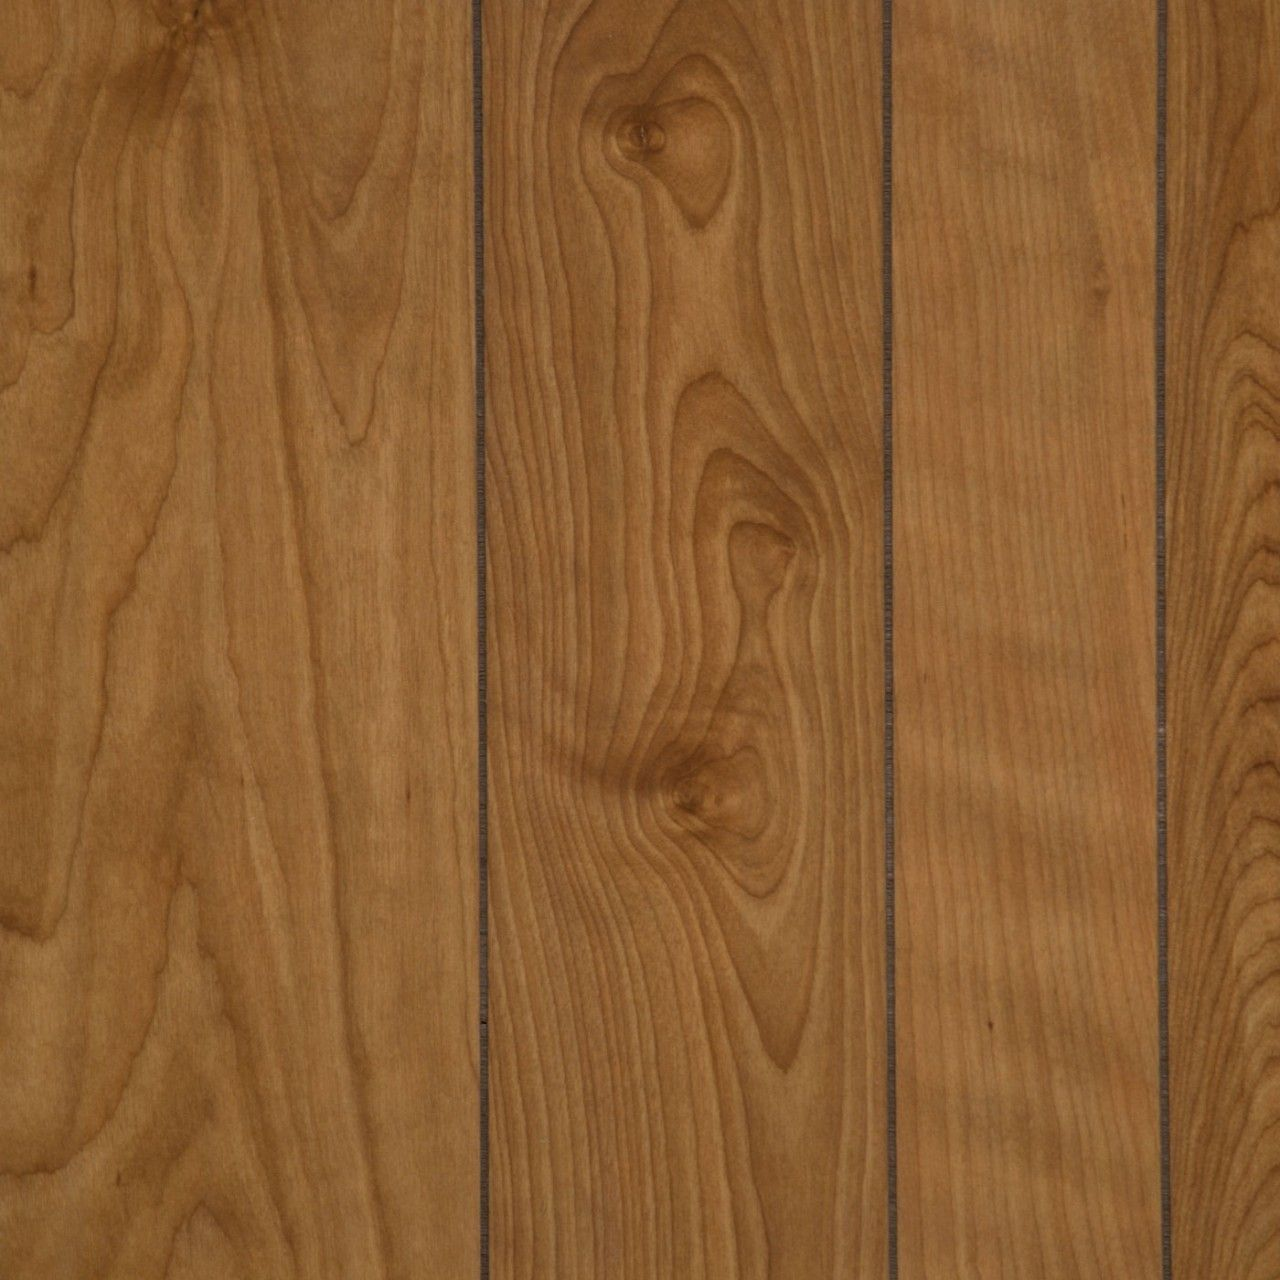 1 8 Spirit Birch Plywood Paneling 9 Groove Plywood Panels Birch Plywood Hardwood Floors